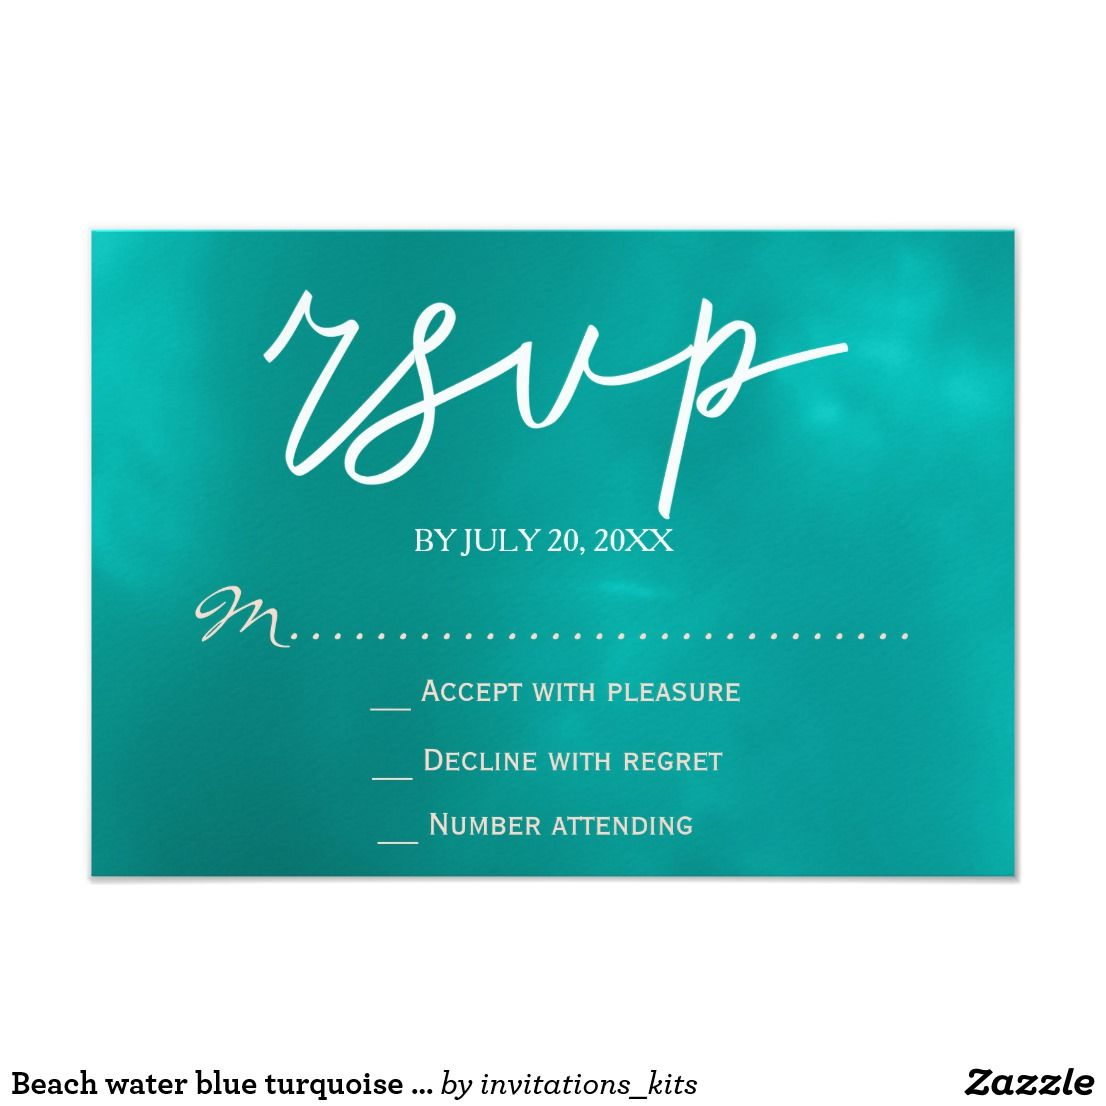 Beach water blue turquoise starfish rsvp wedding card | Beach ...